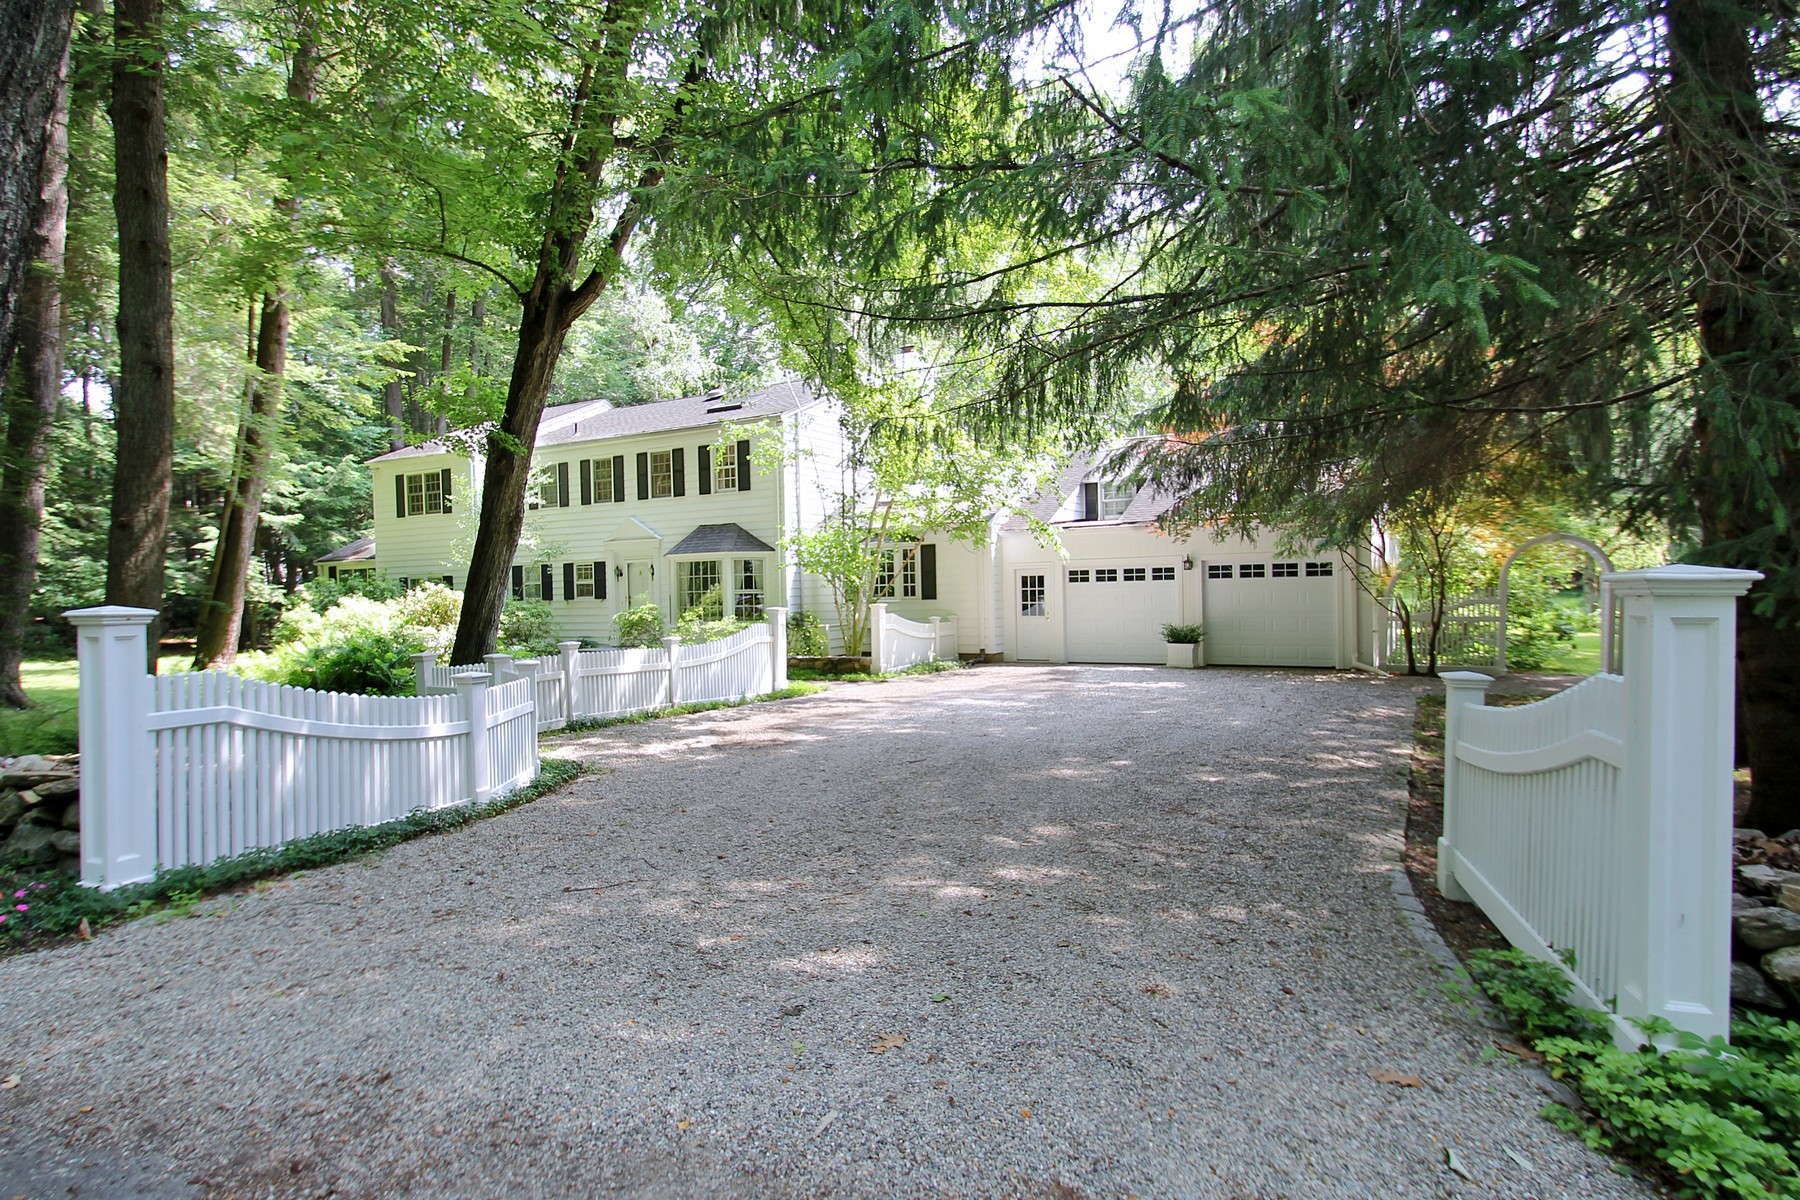 Property For Sale at Wonderful Welcoming Colonial on Gorgeous Private Two Acres in Lower Weston